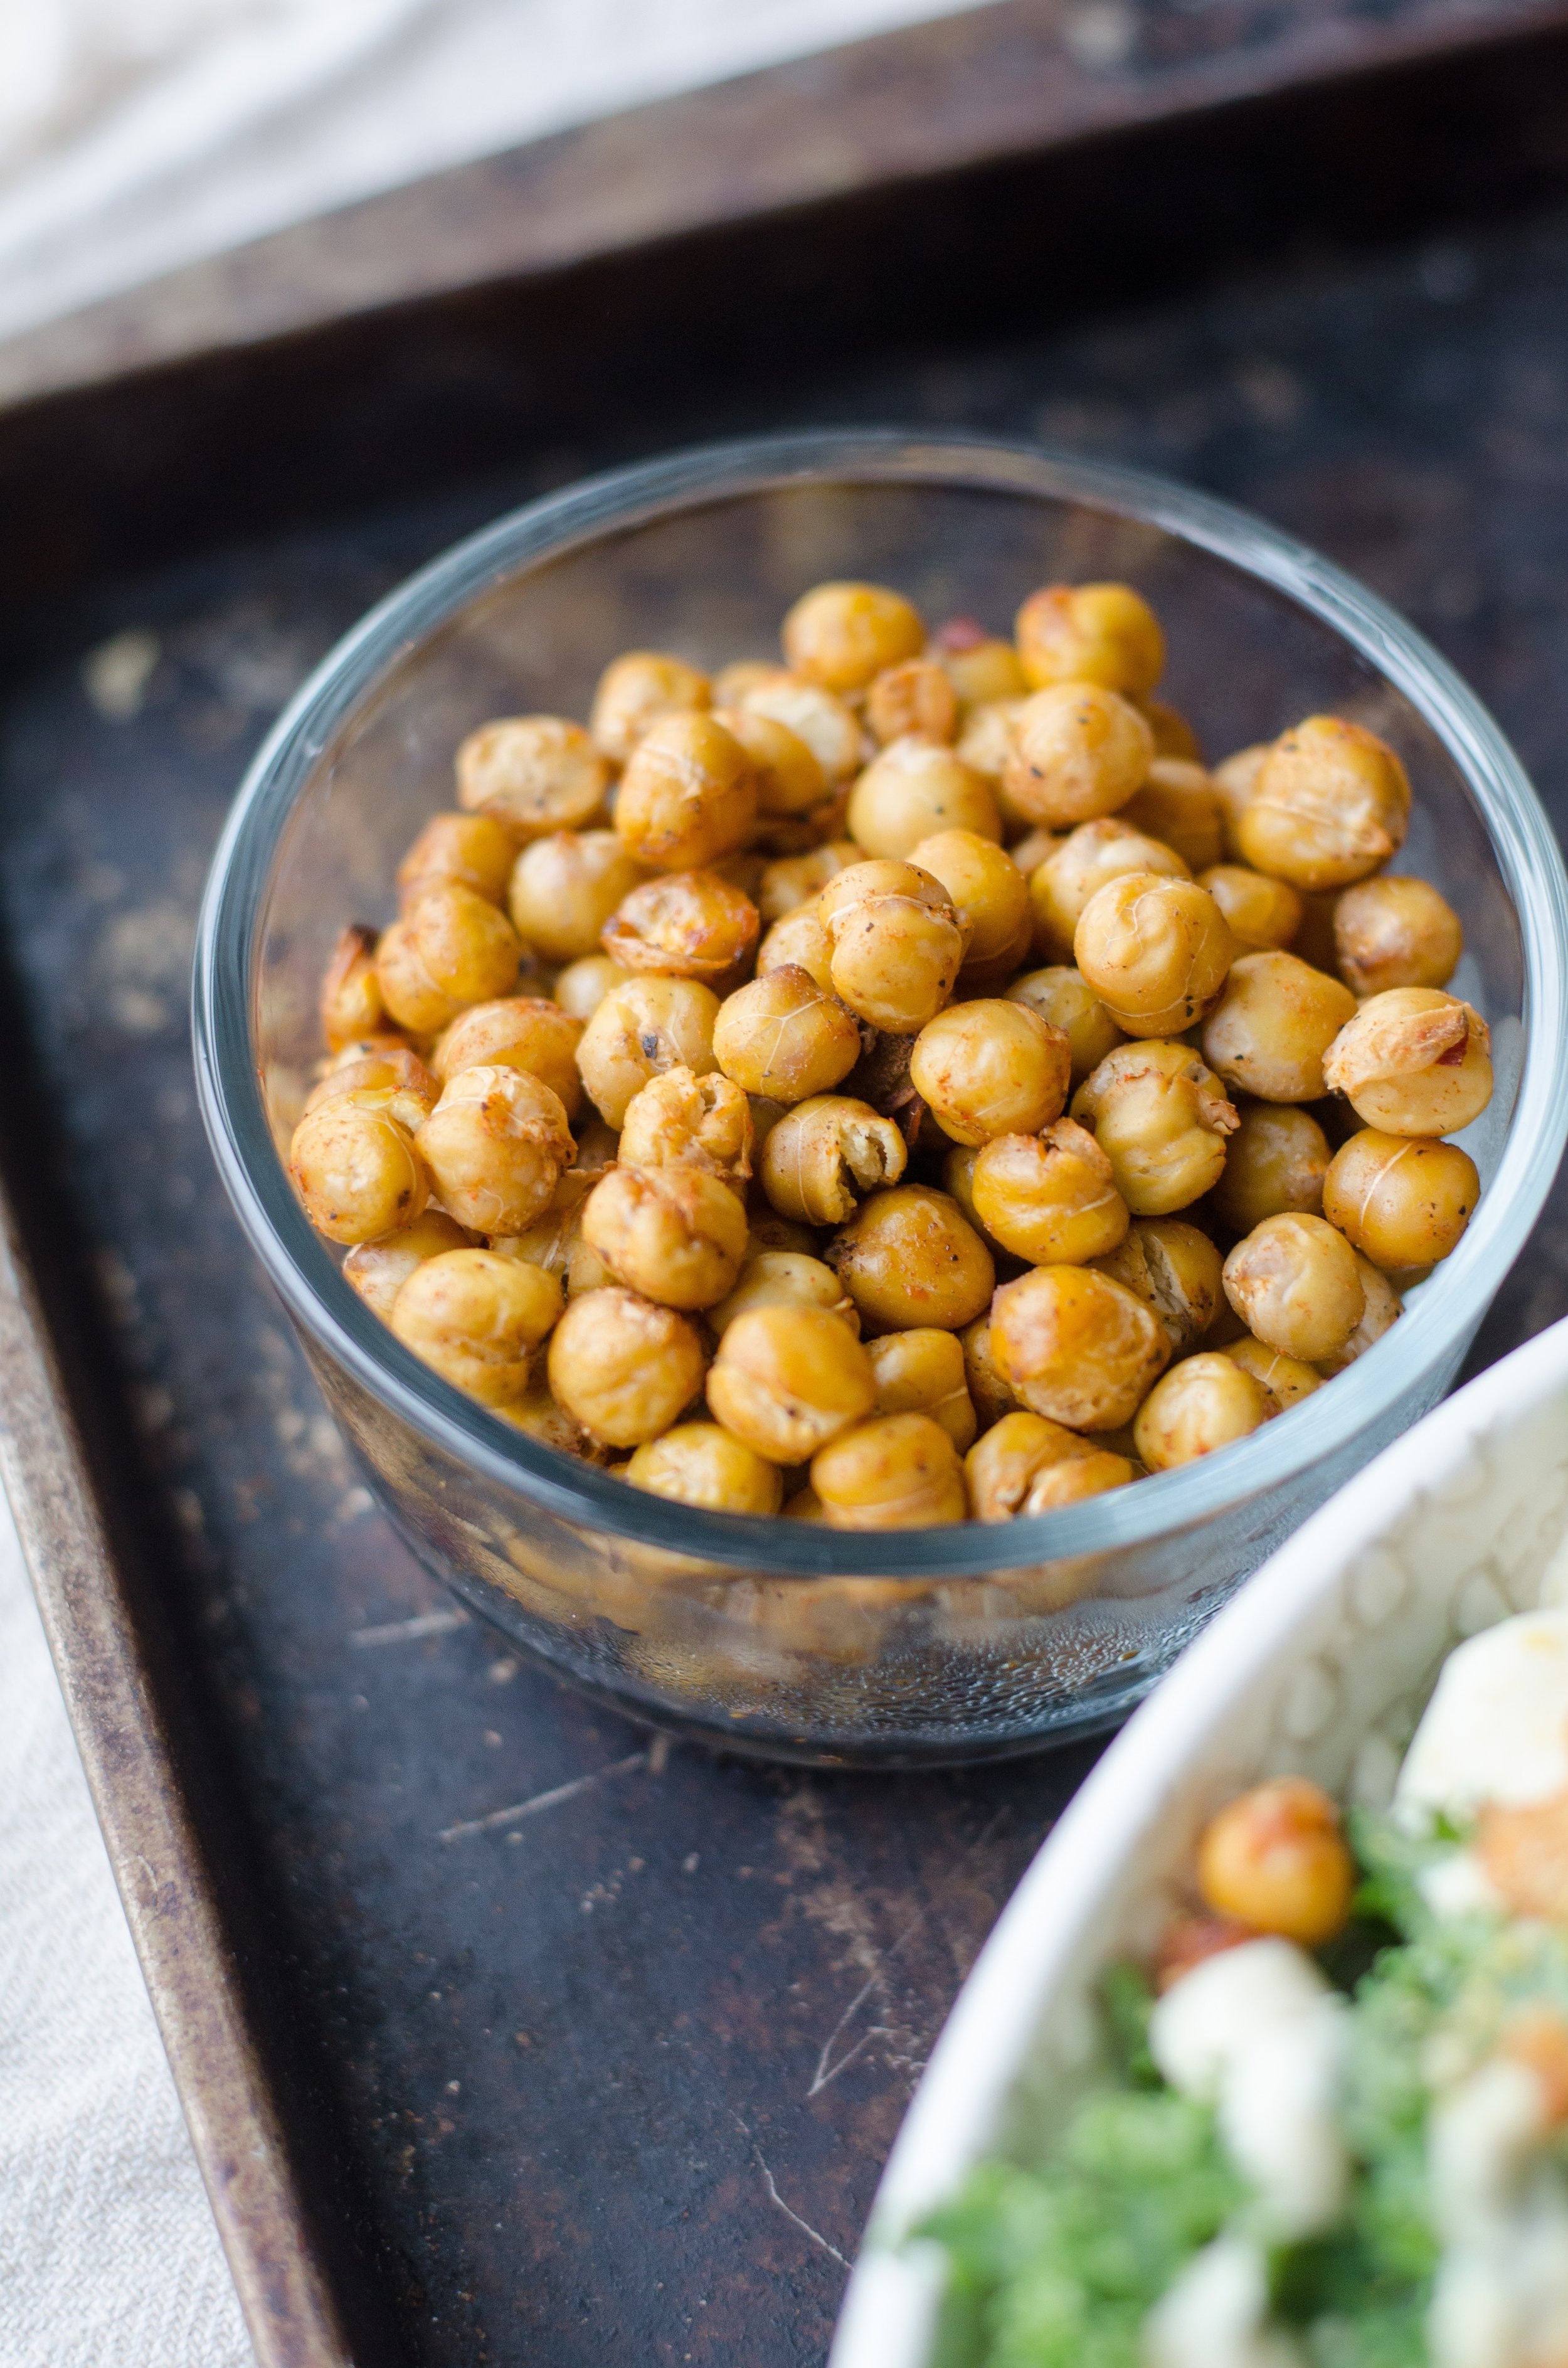 These tiny crispy beans should really be the new bar nuts. Two cans of chickpeas and about 20 minutes will yield addictively salty crispy bites. So what are you waiting for?